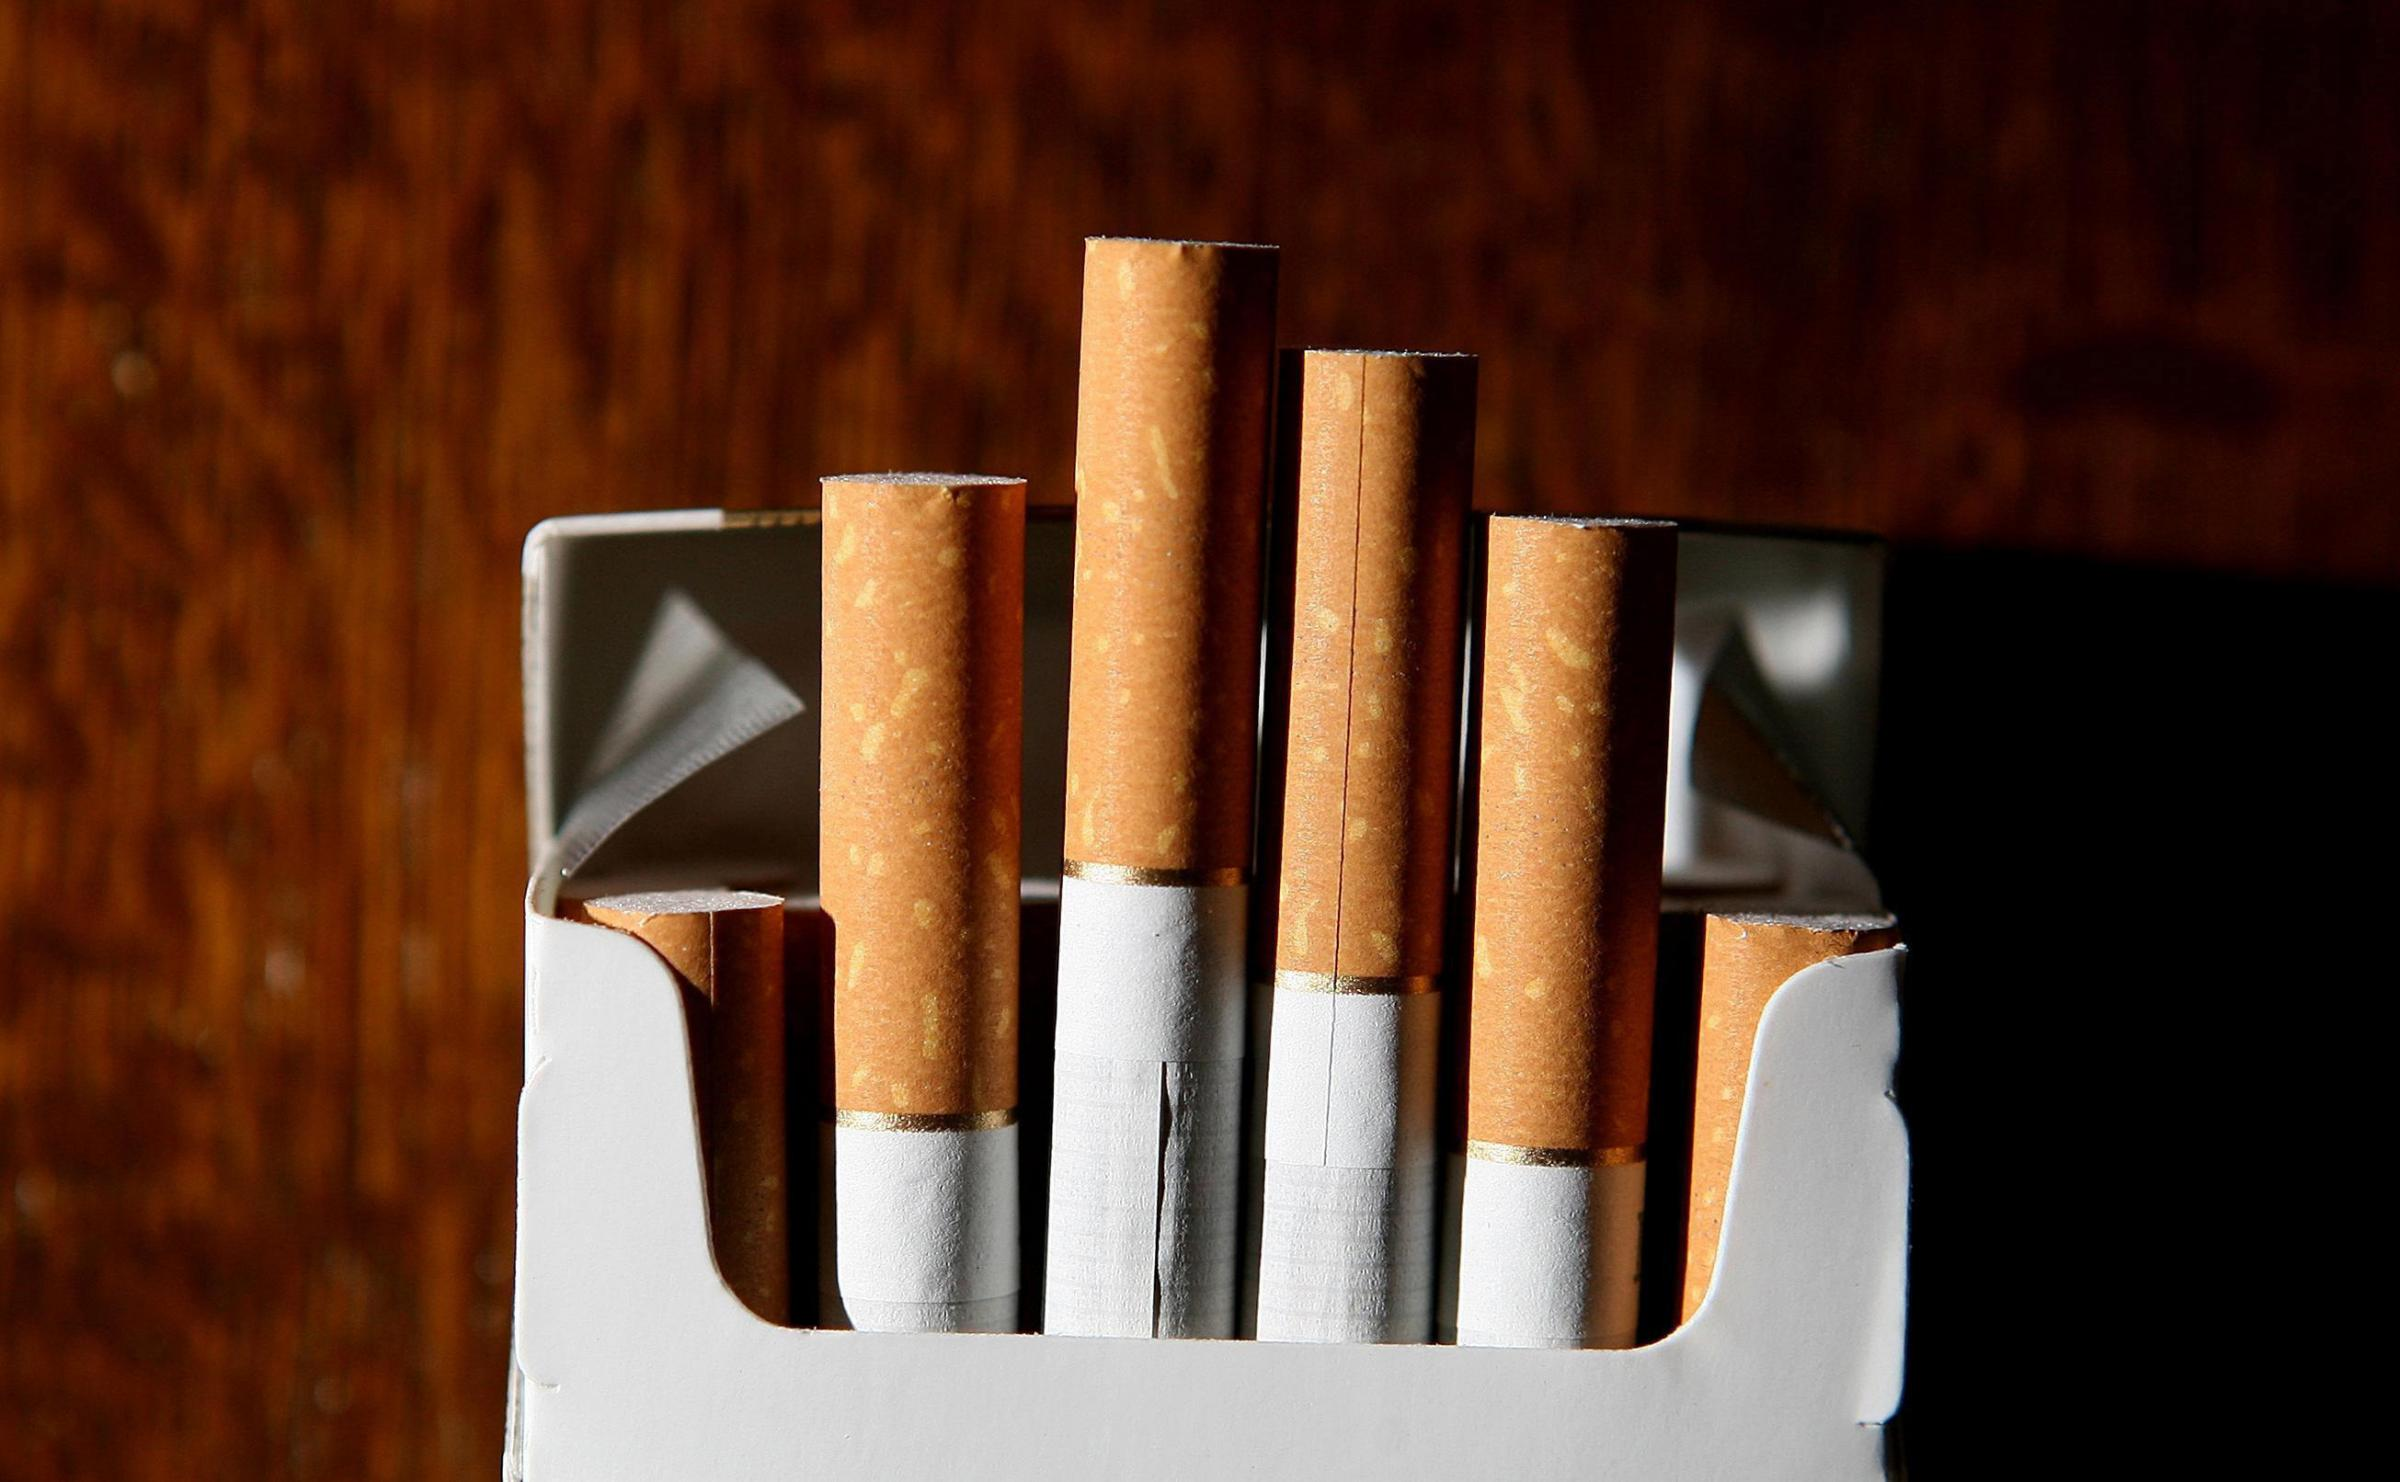 File photo dated 18/06/07 of cigarettes. George Osborne will make a pitch to ordinary working people today when he delivers his penultimate Budget before the general election.  PRESS ASSOCIATION Photo. Issue date: Wednesday March 19, 2014. See PA BUDGET s